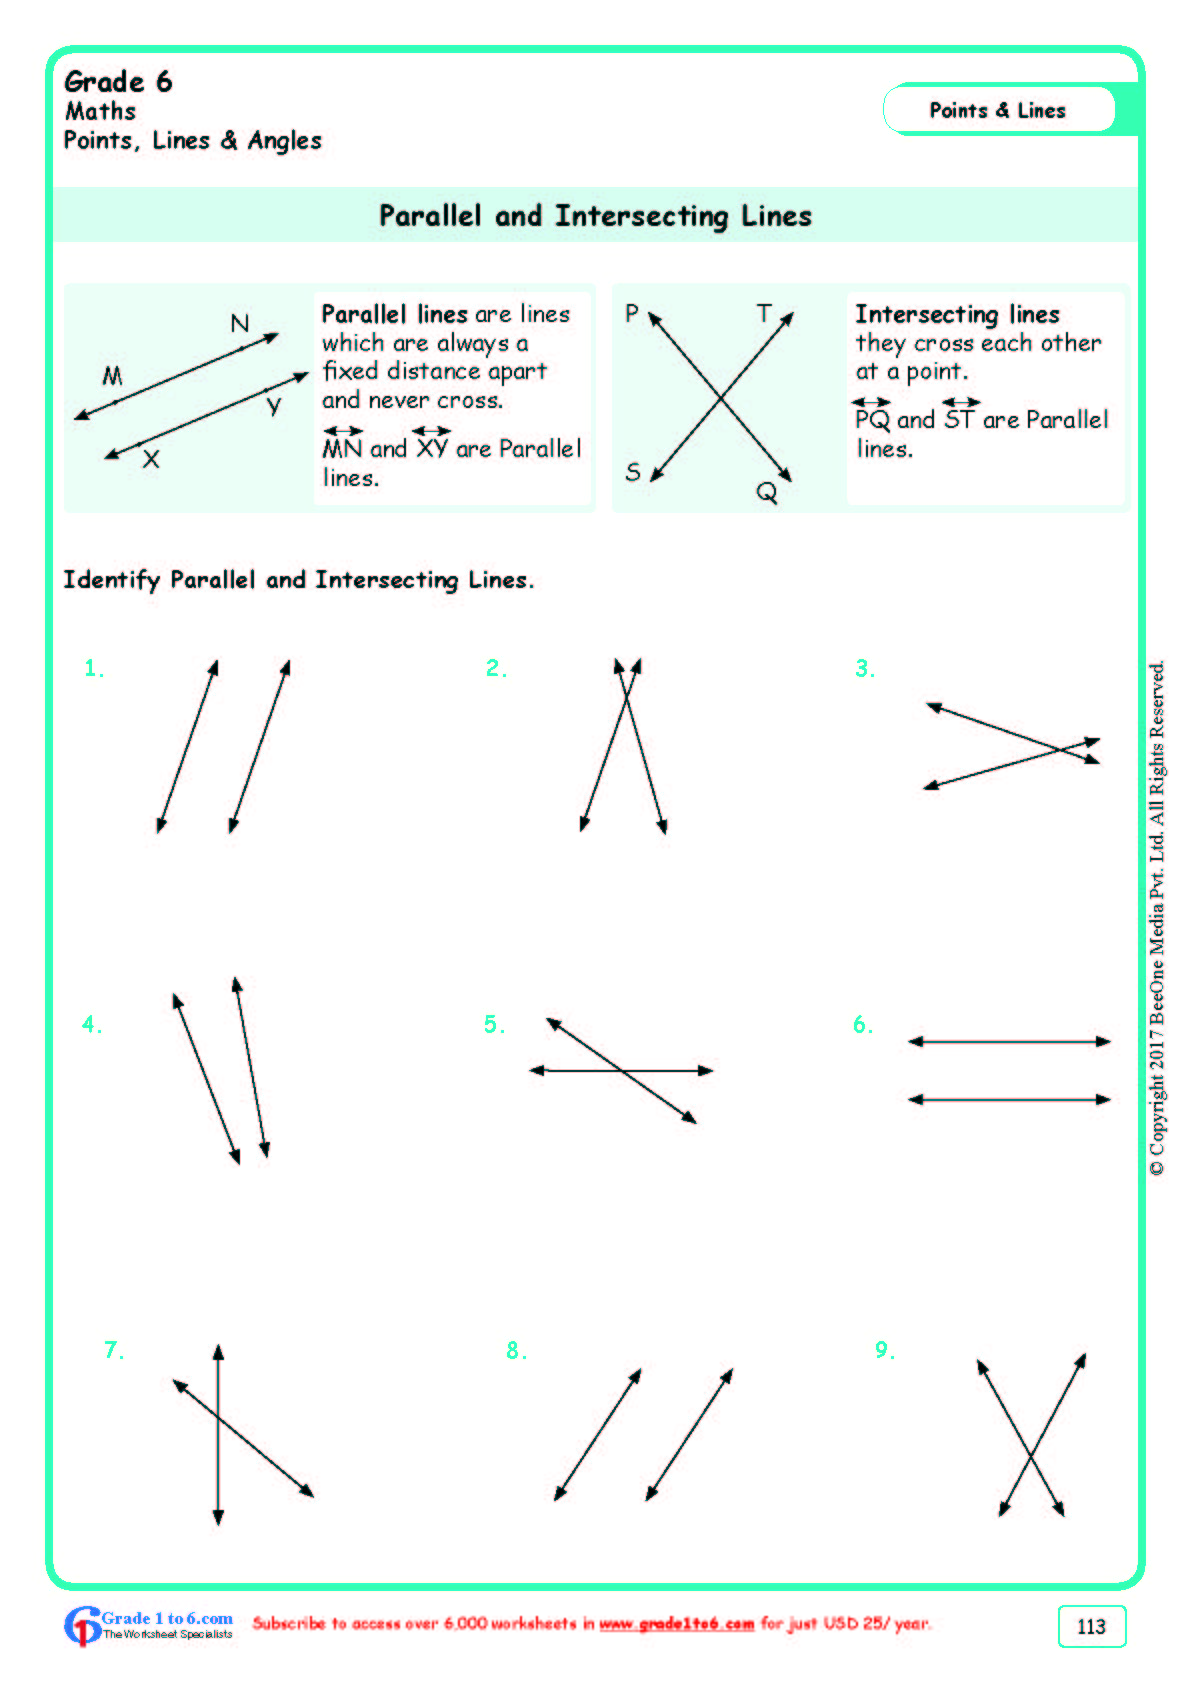 hight resolution of Parallel \u0026 Intersecting Lines Worksheets www.grade1to6.com